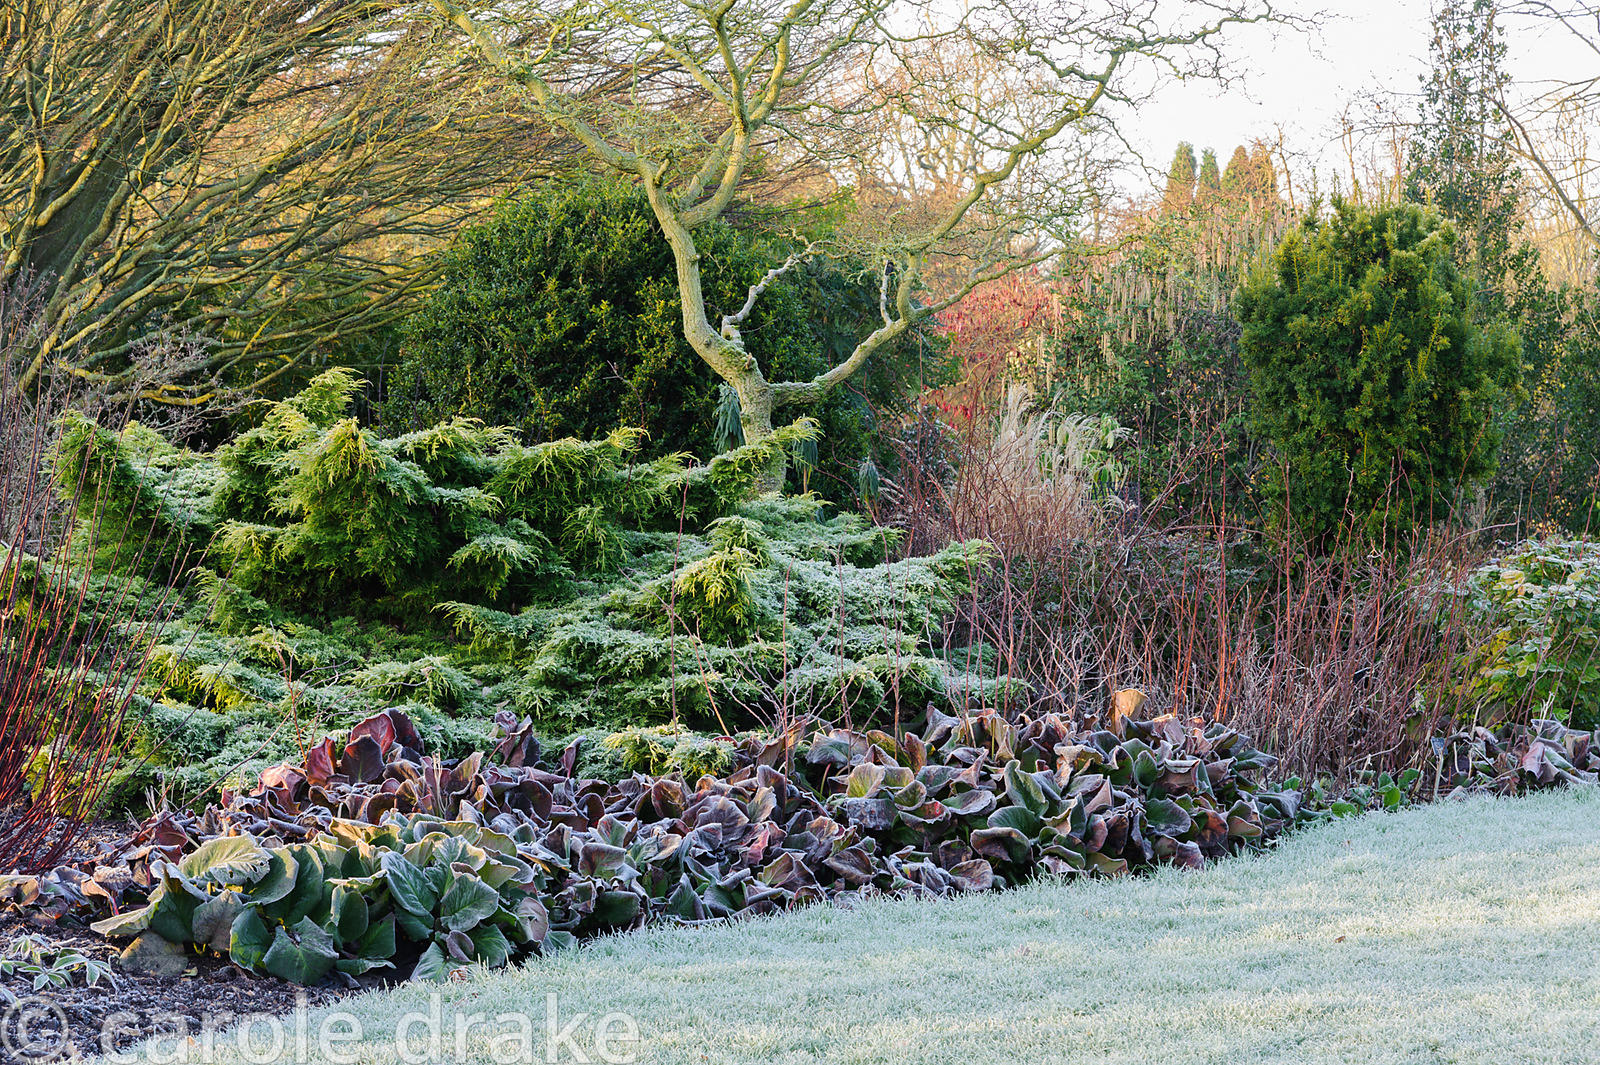 Frosted bergenia leaves with cornus and evergreens. Sir Harold Hillier Gardens, Ampfield, Romsey, Hants, UK